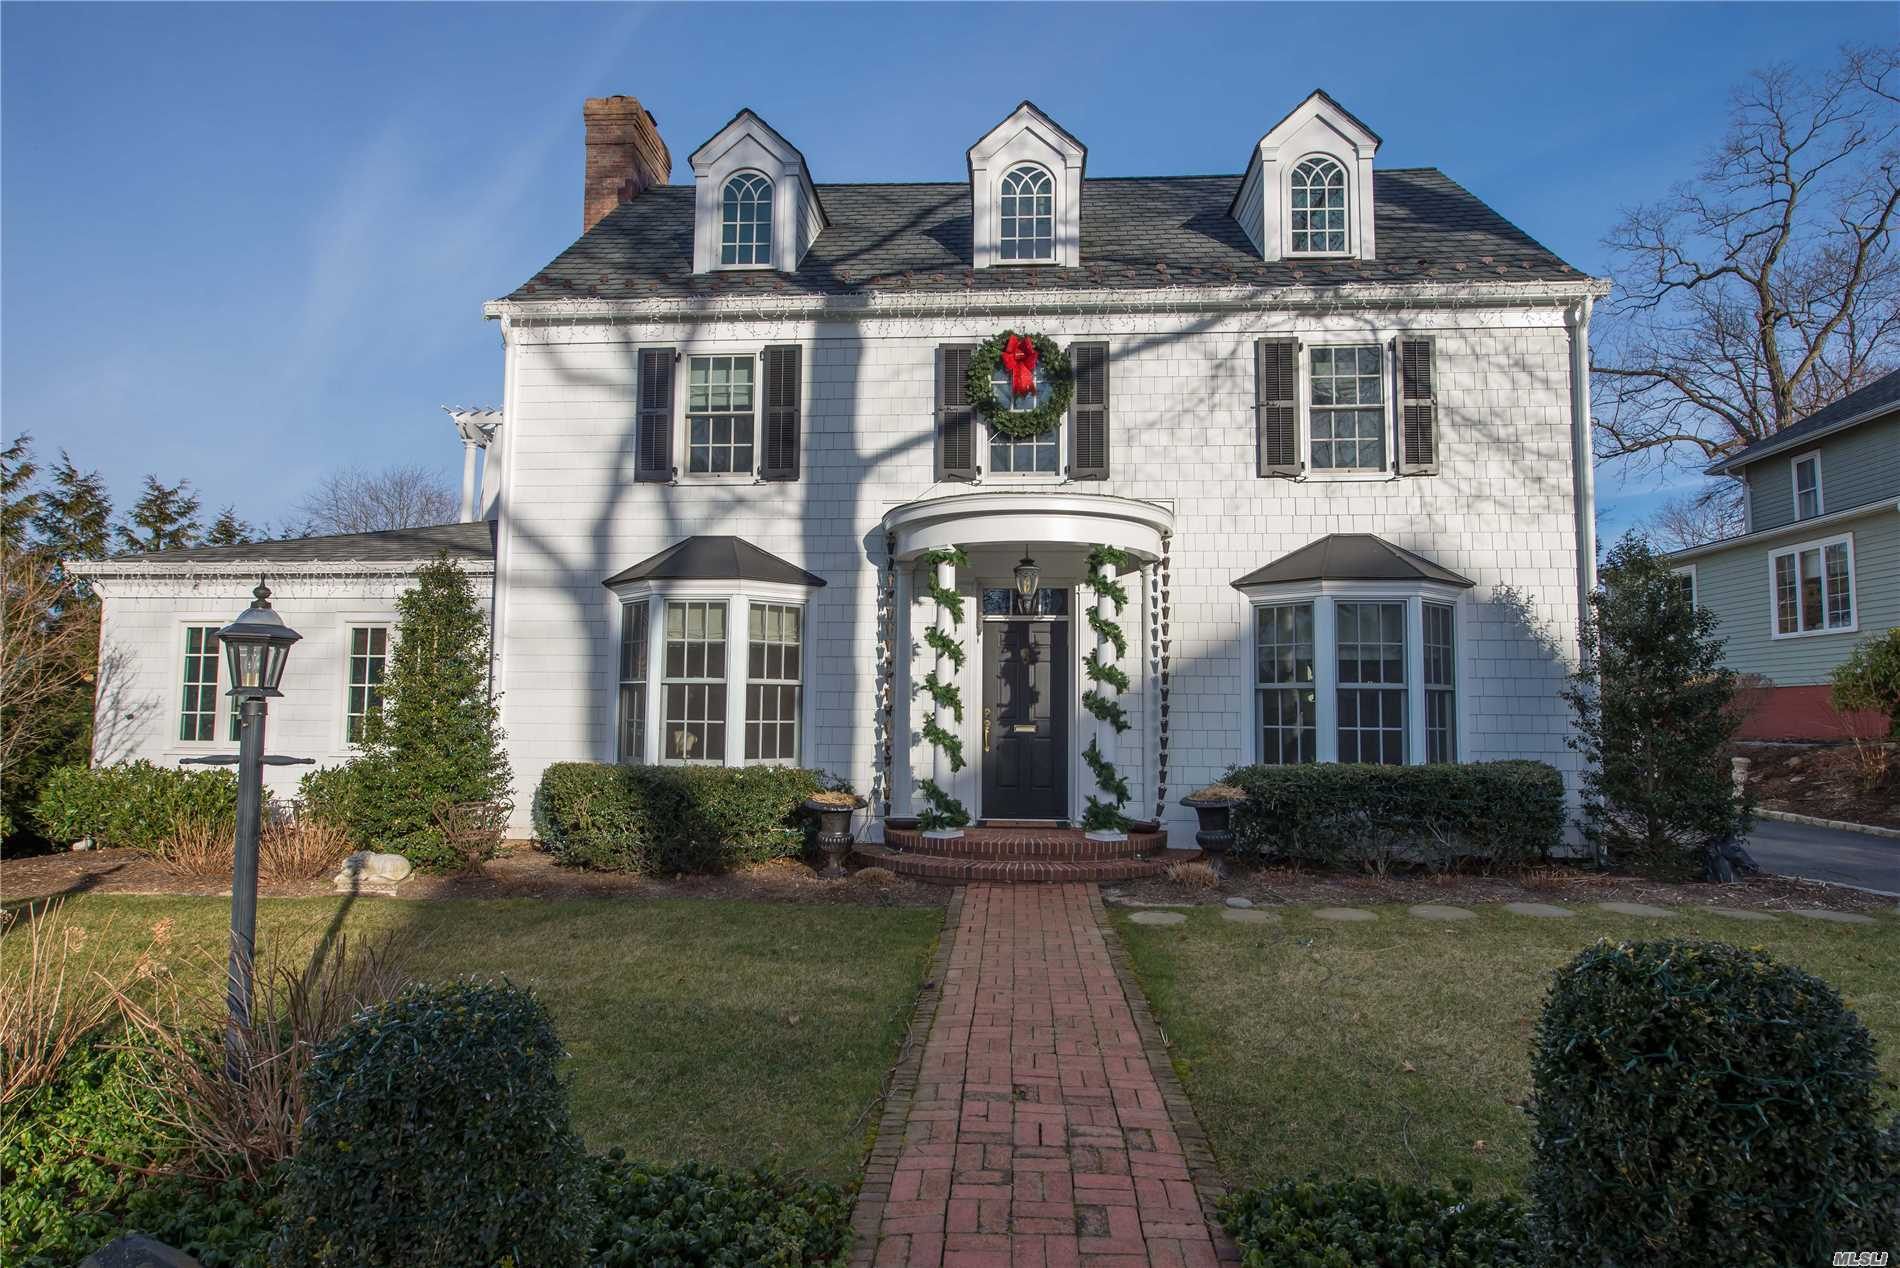 Customized Victorian/Colonial Completely Renovated , Master Suite Floor W/Breakfast Bar, Dual Office, Dressing Room, Outside Veranda, Chef's Kitchen With Radiant Heat, All The Bells And Whistles, Professionally Landscaped Design Yard With Pergolas, Separate 3 Car Garage, Tons Of Storage. Legal 2 Family Apt With Magnificent Kitchen, Great Room, Full Bath, Prime Village Location, Minutes To Restaurants, Entertainment, Parks And Beaches. Complete Turn Key- Perfect! And A Place To Call Home.